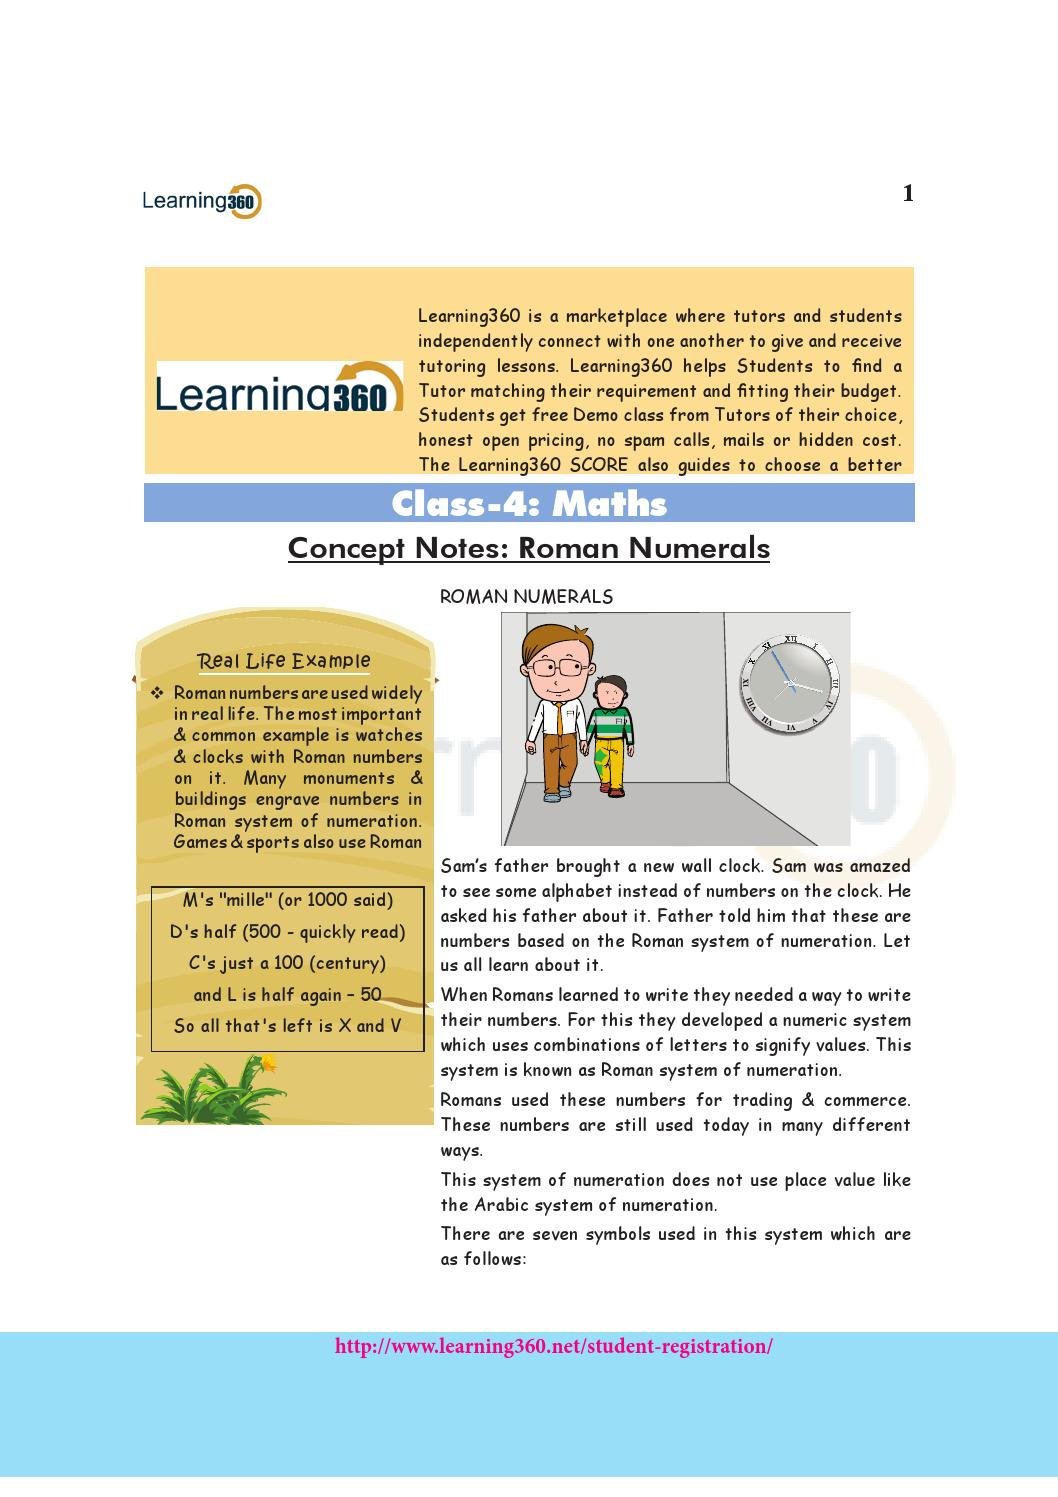 Maths Concept Notes Class 4 Roman Numerals By Learning 360 Issuu